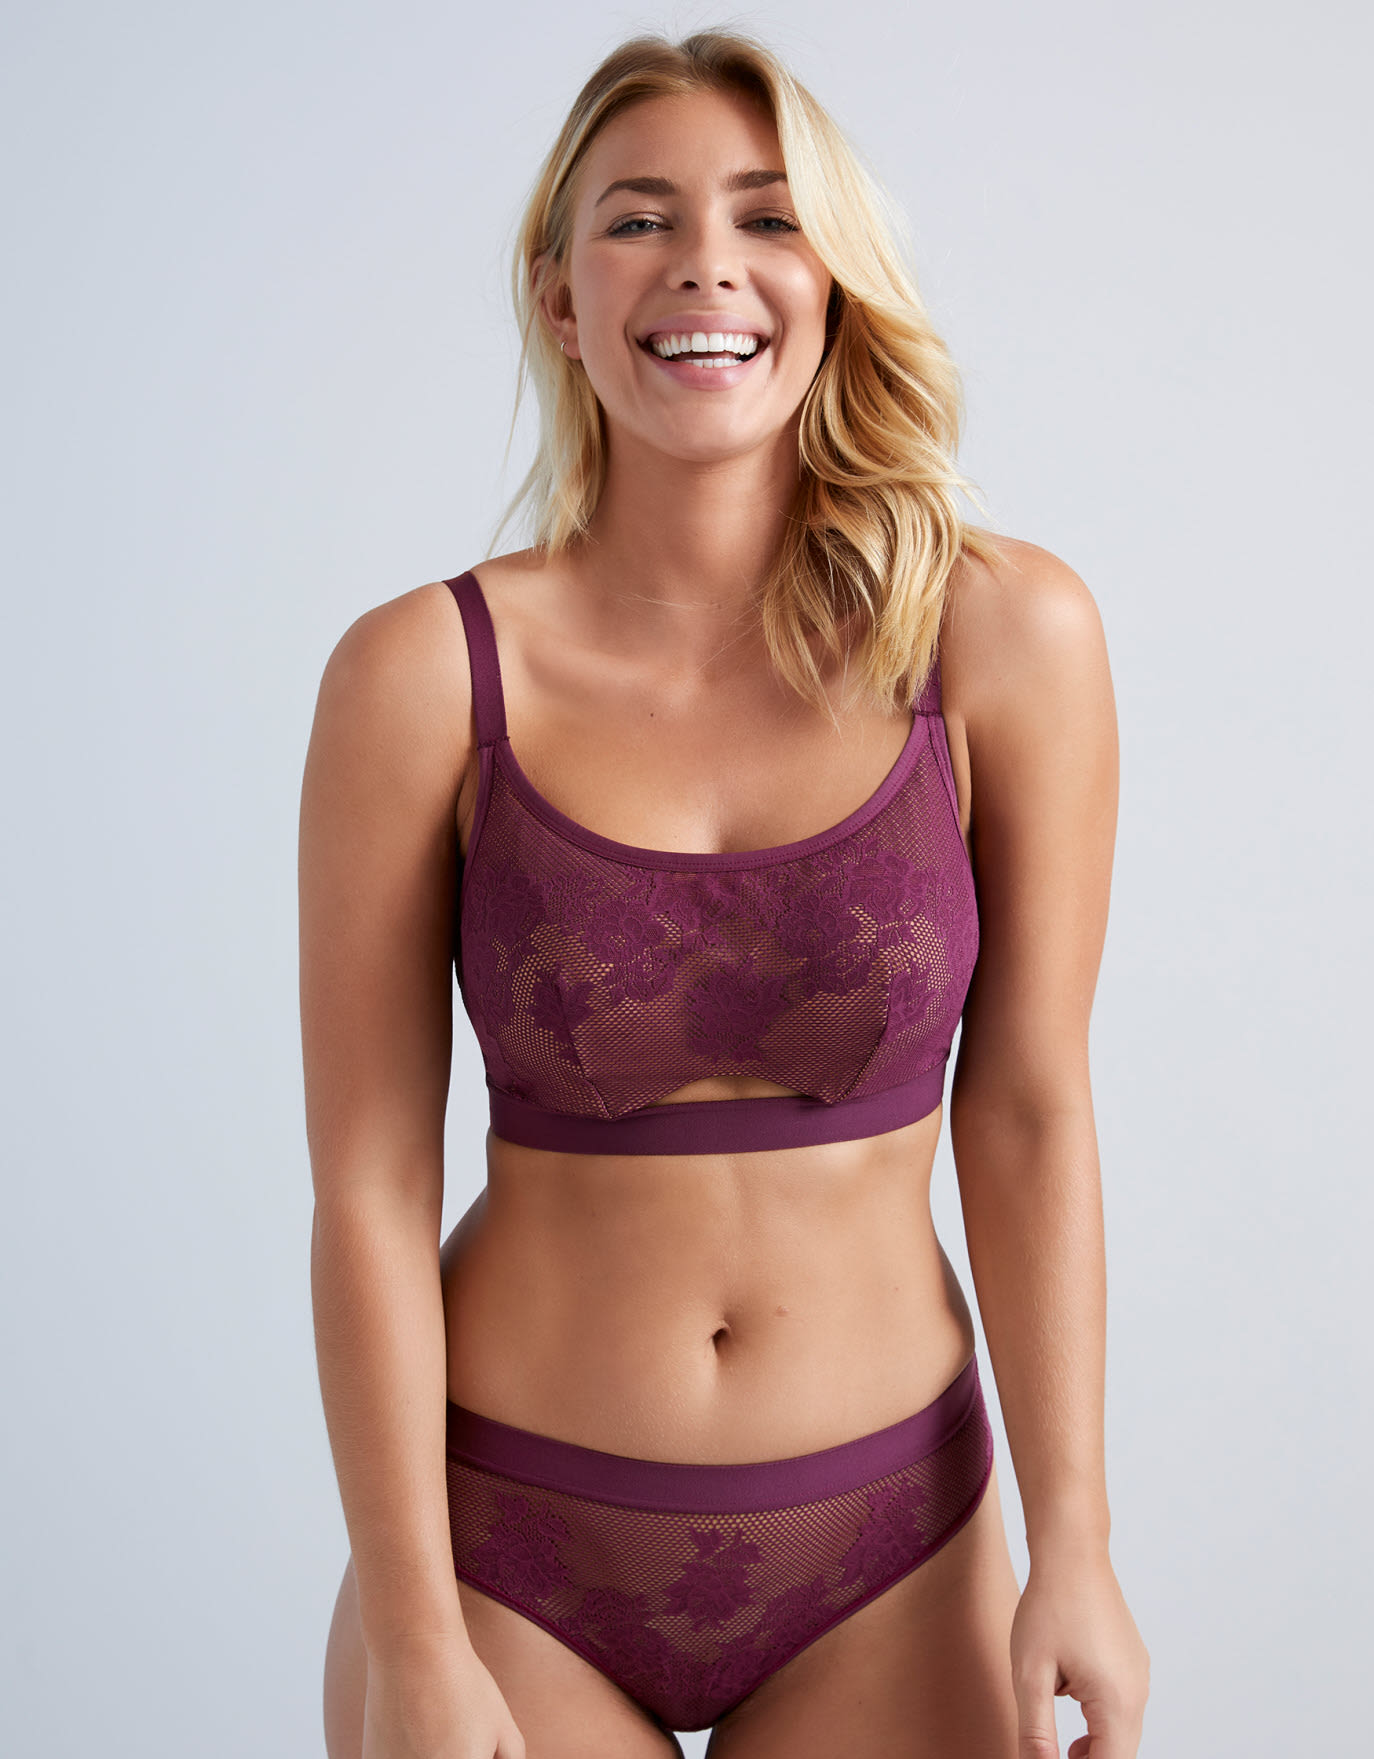 a176268f83 Bralettes for Big Busts